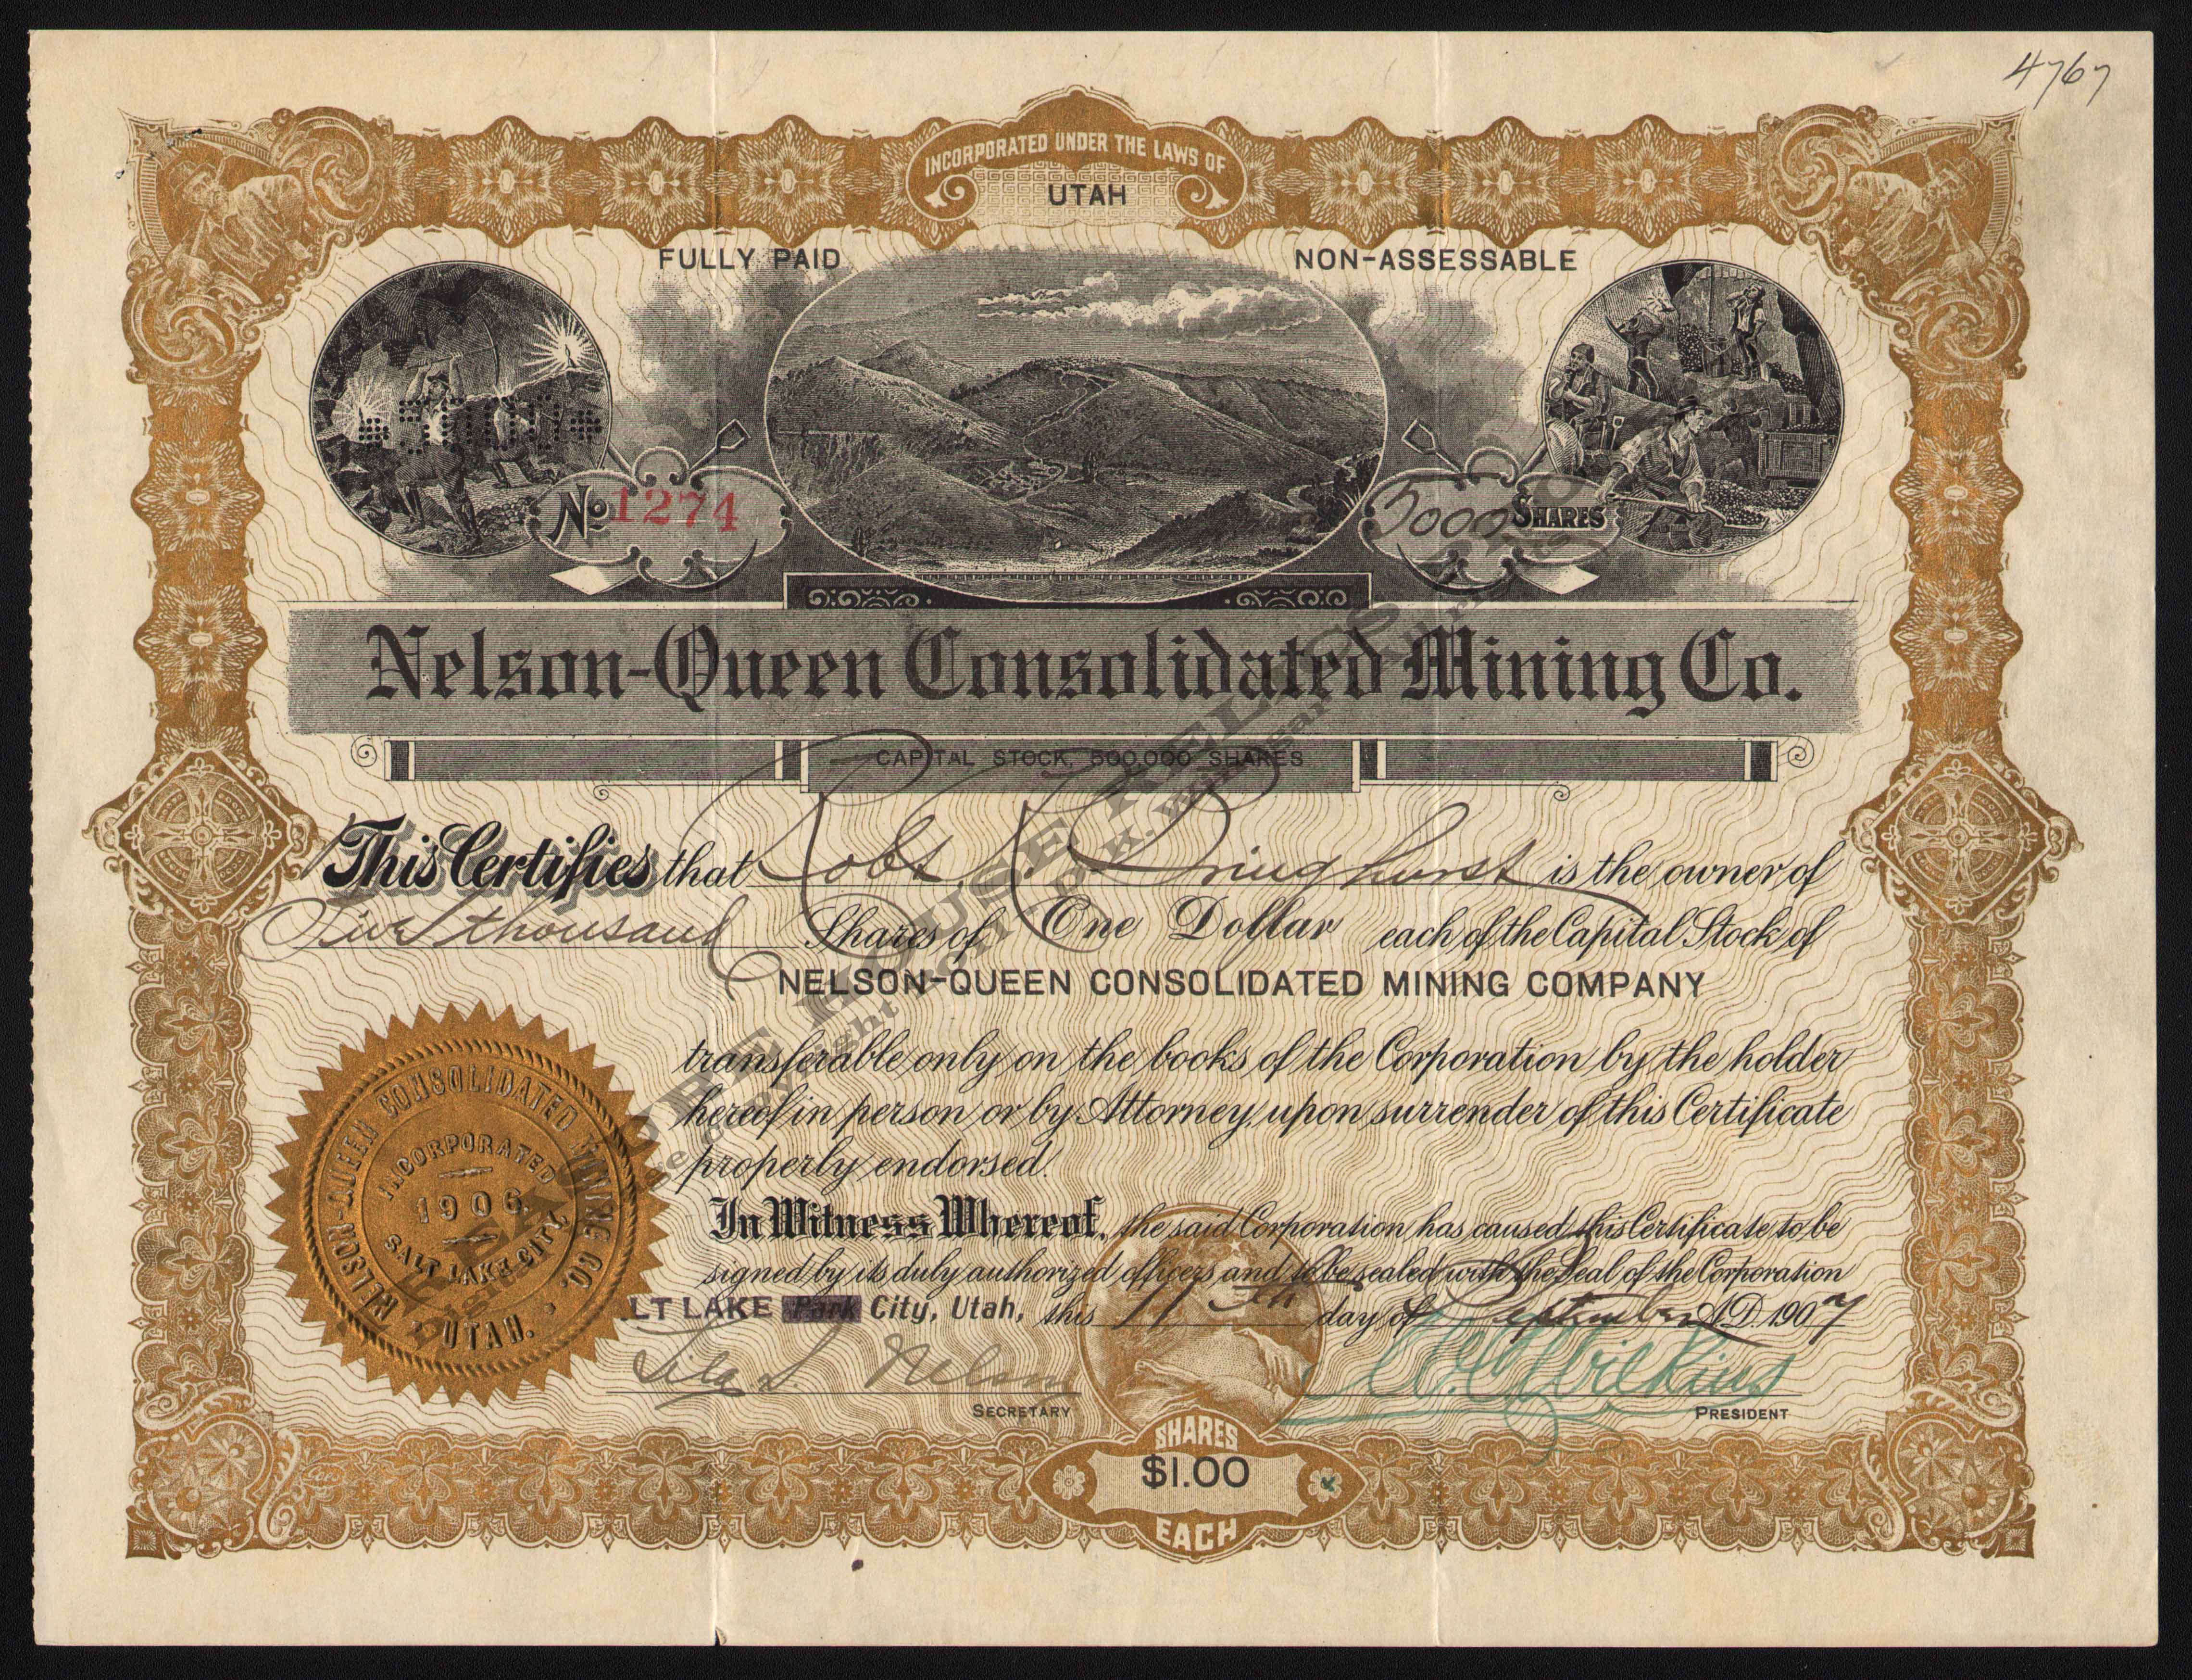 LETTERHEAD/NELSON_QUEEN_CONSOLIDATED_MINING_COMPANY_1274_1907_KIRK_400_CROP_EMBOSS.jpg